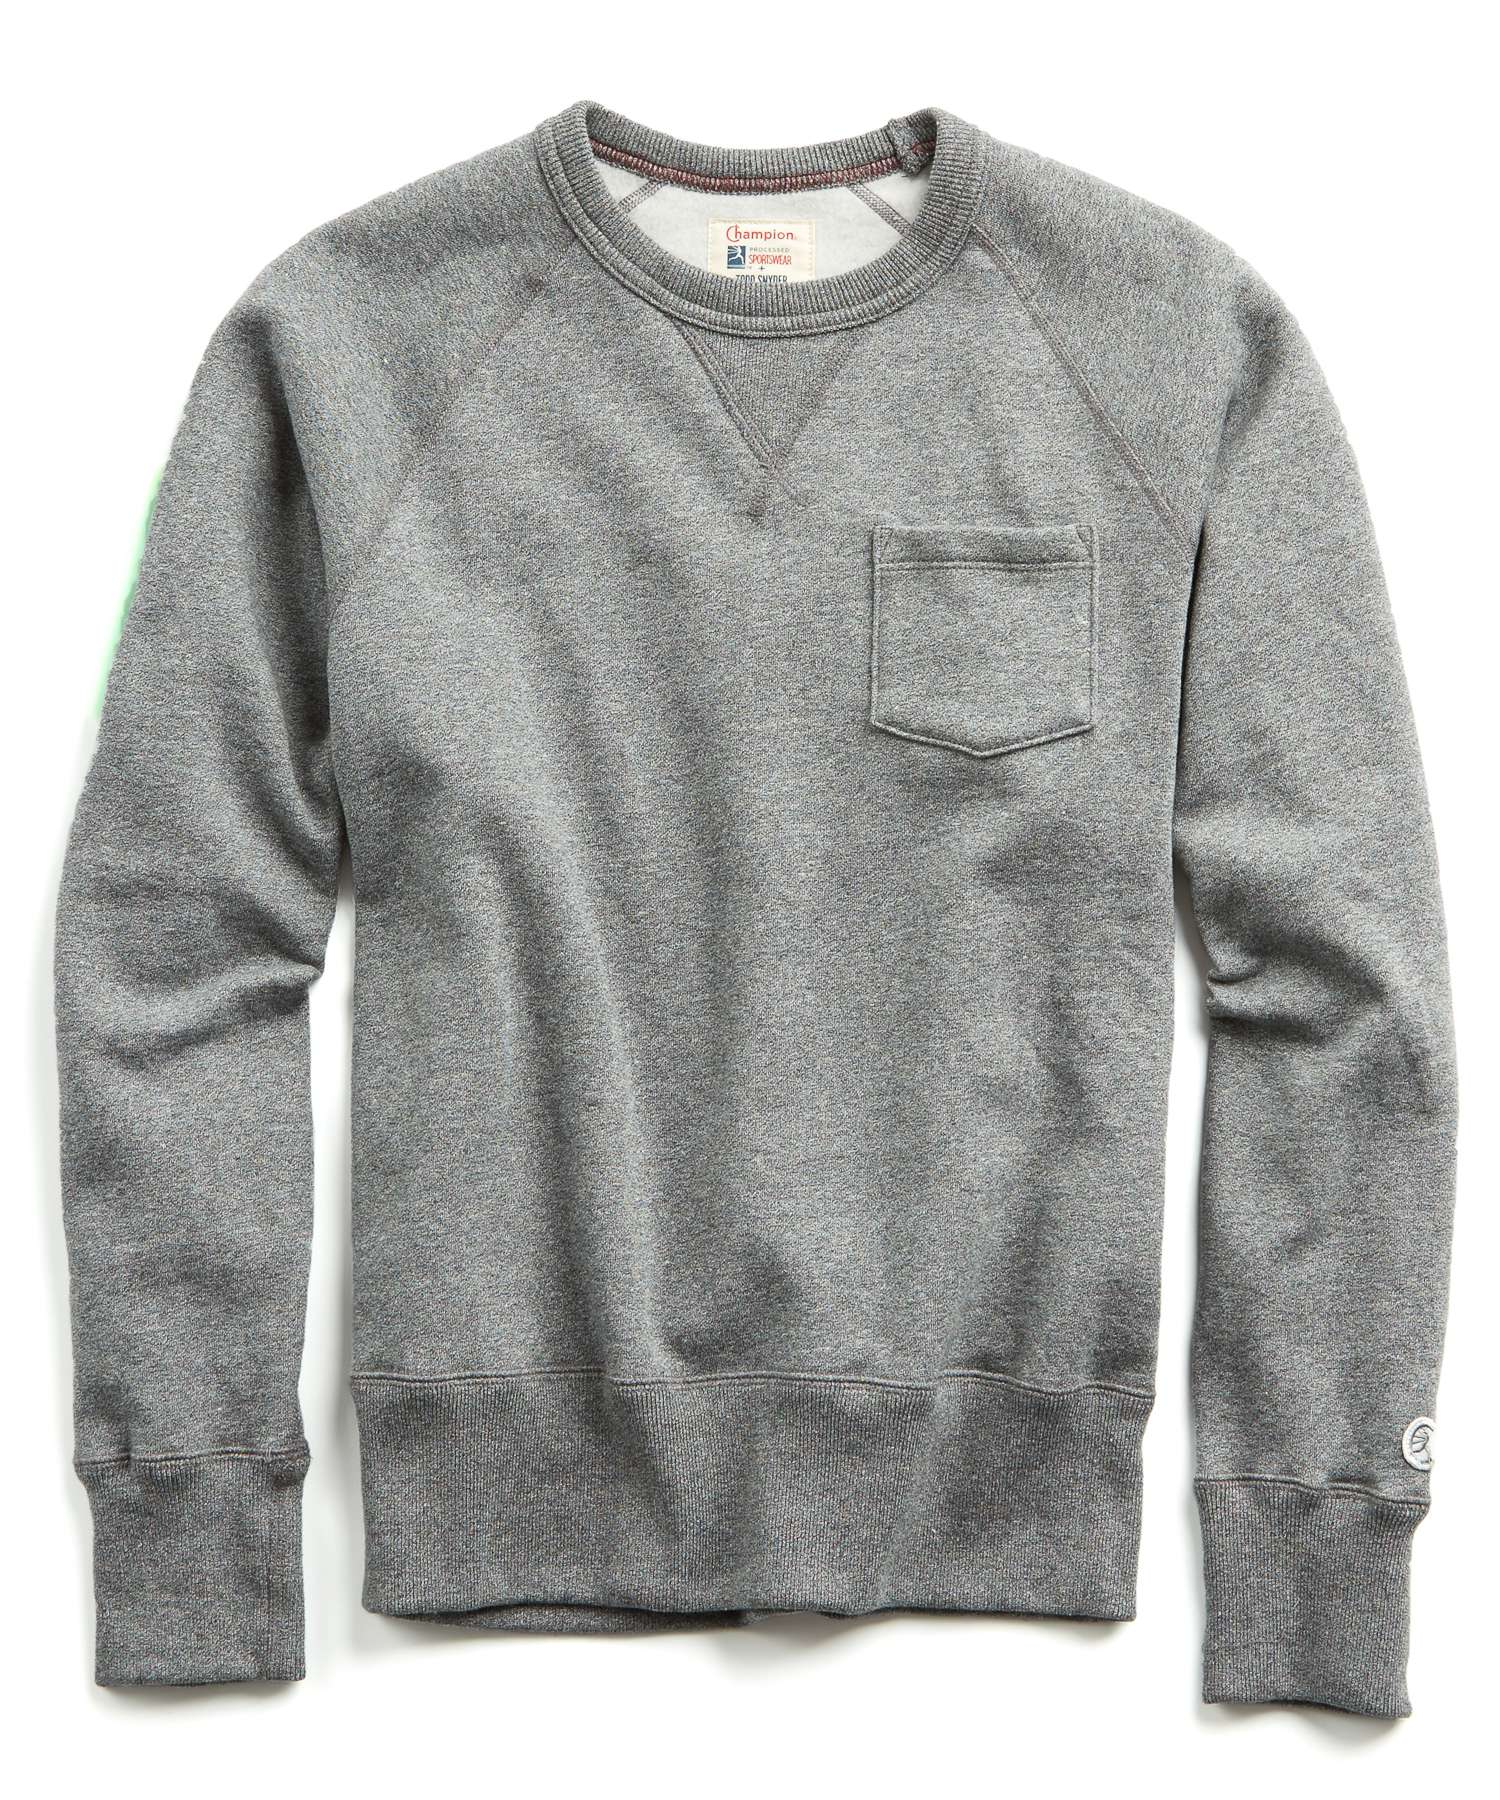 Fleece Pocket Sweatshirt in Salt and Pepper